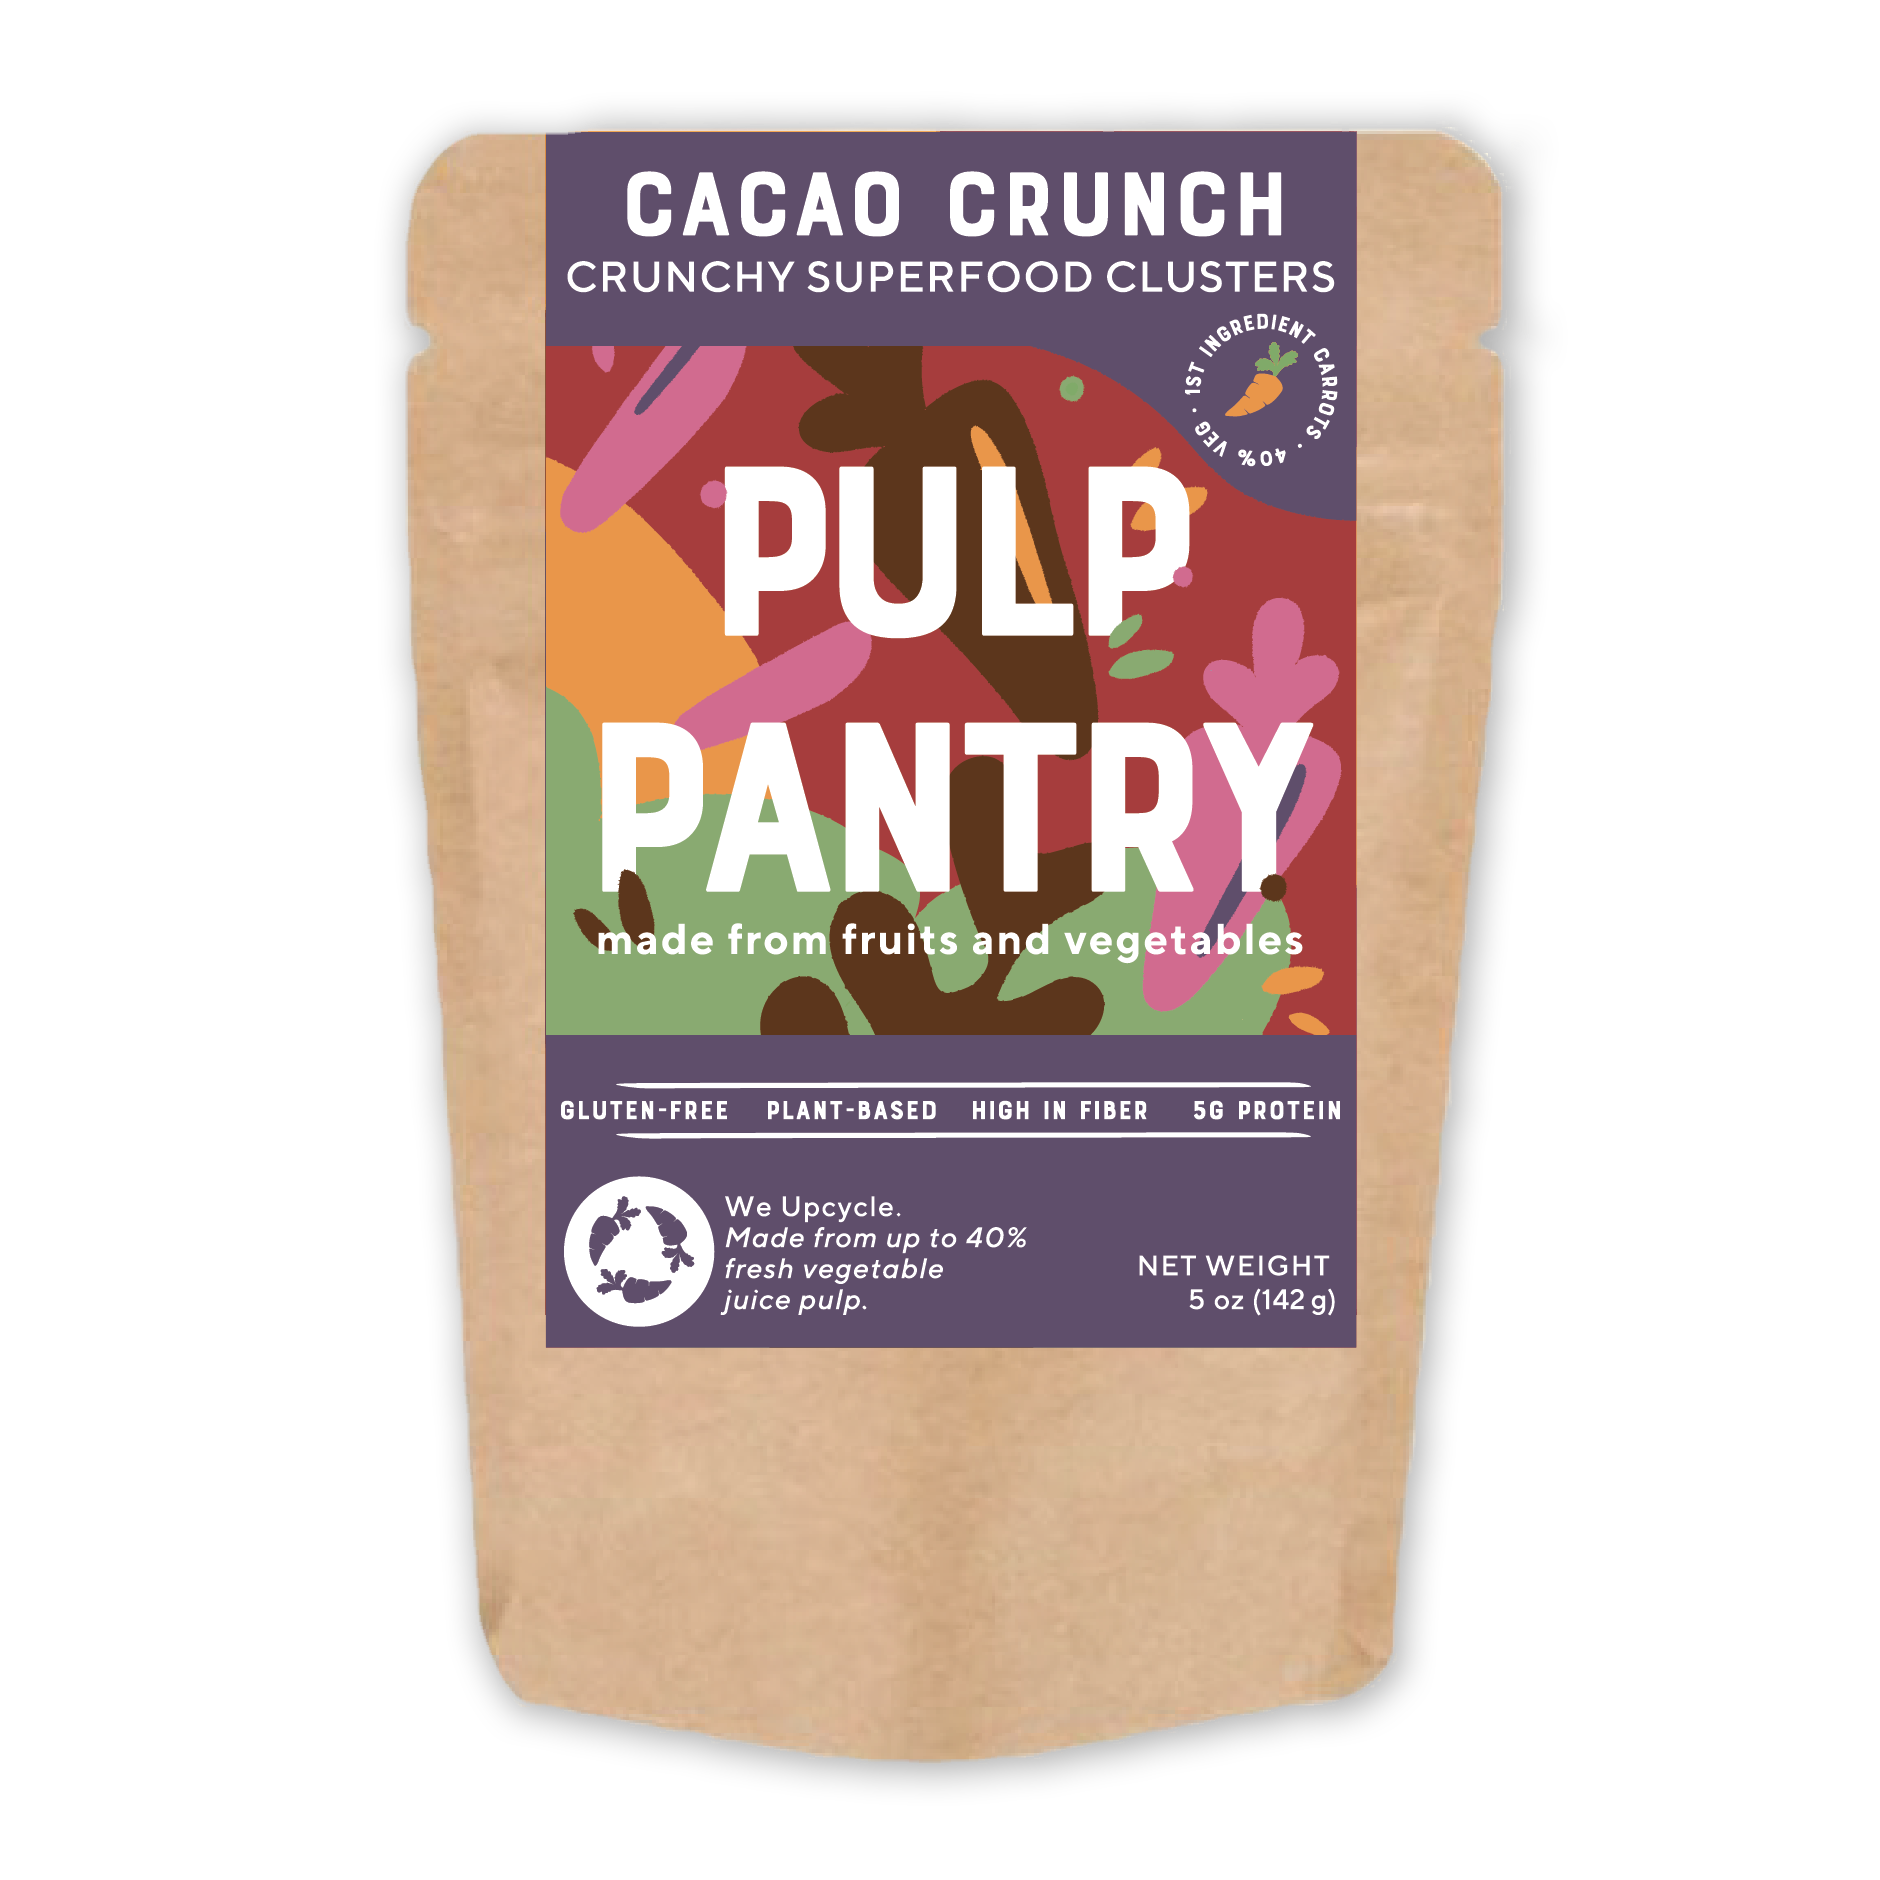 Transparent packaging crunch. Cacao plant based granola